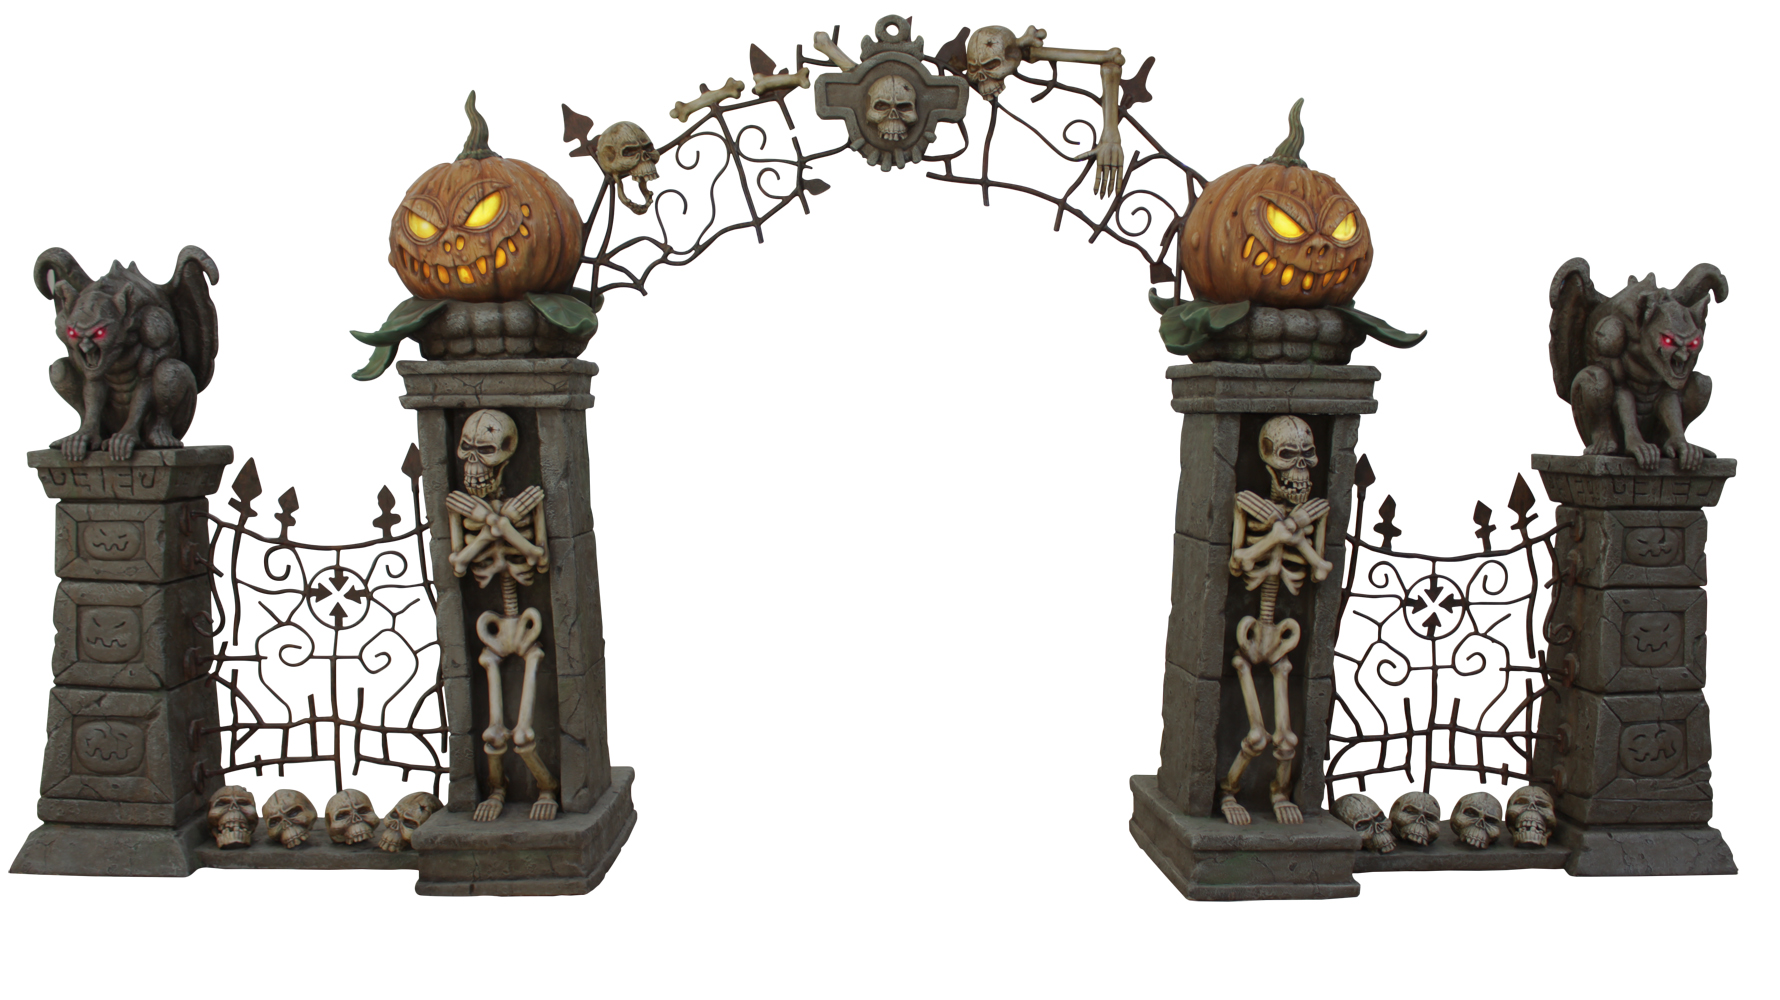 Skeleton, Pumpkin, and Gargoyle Arch